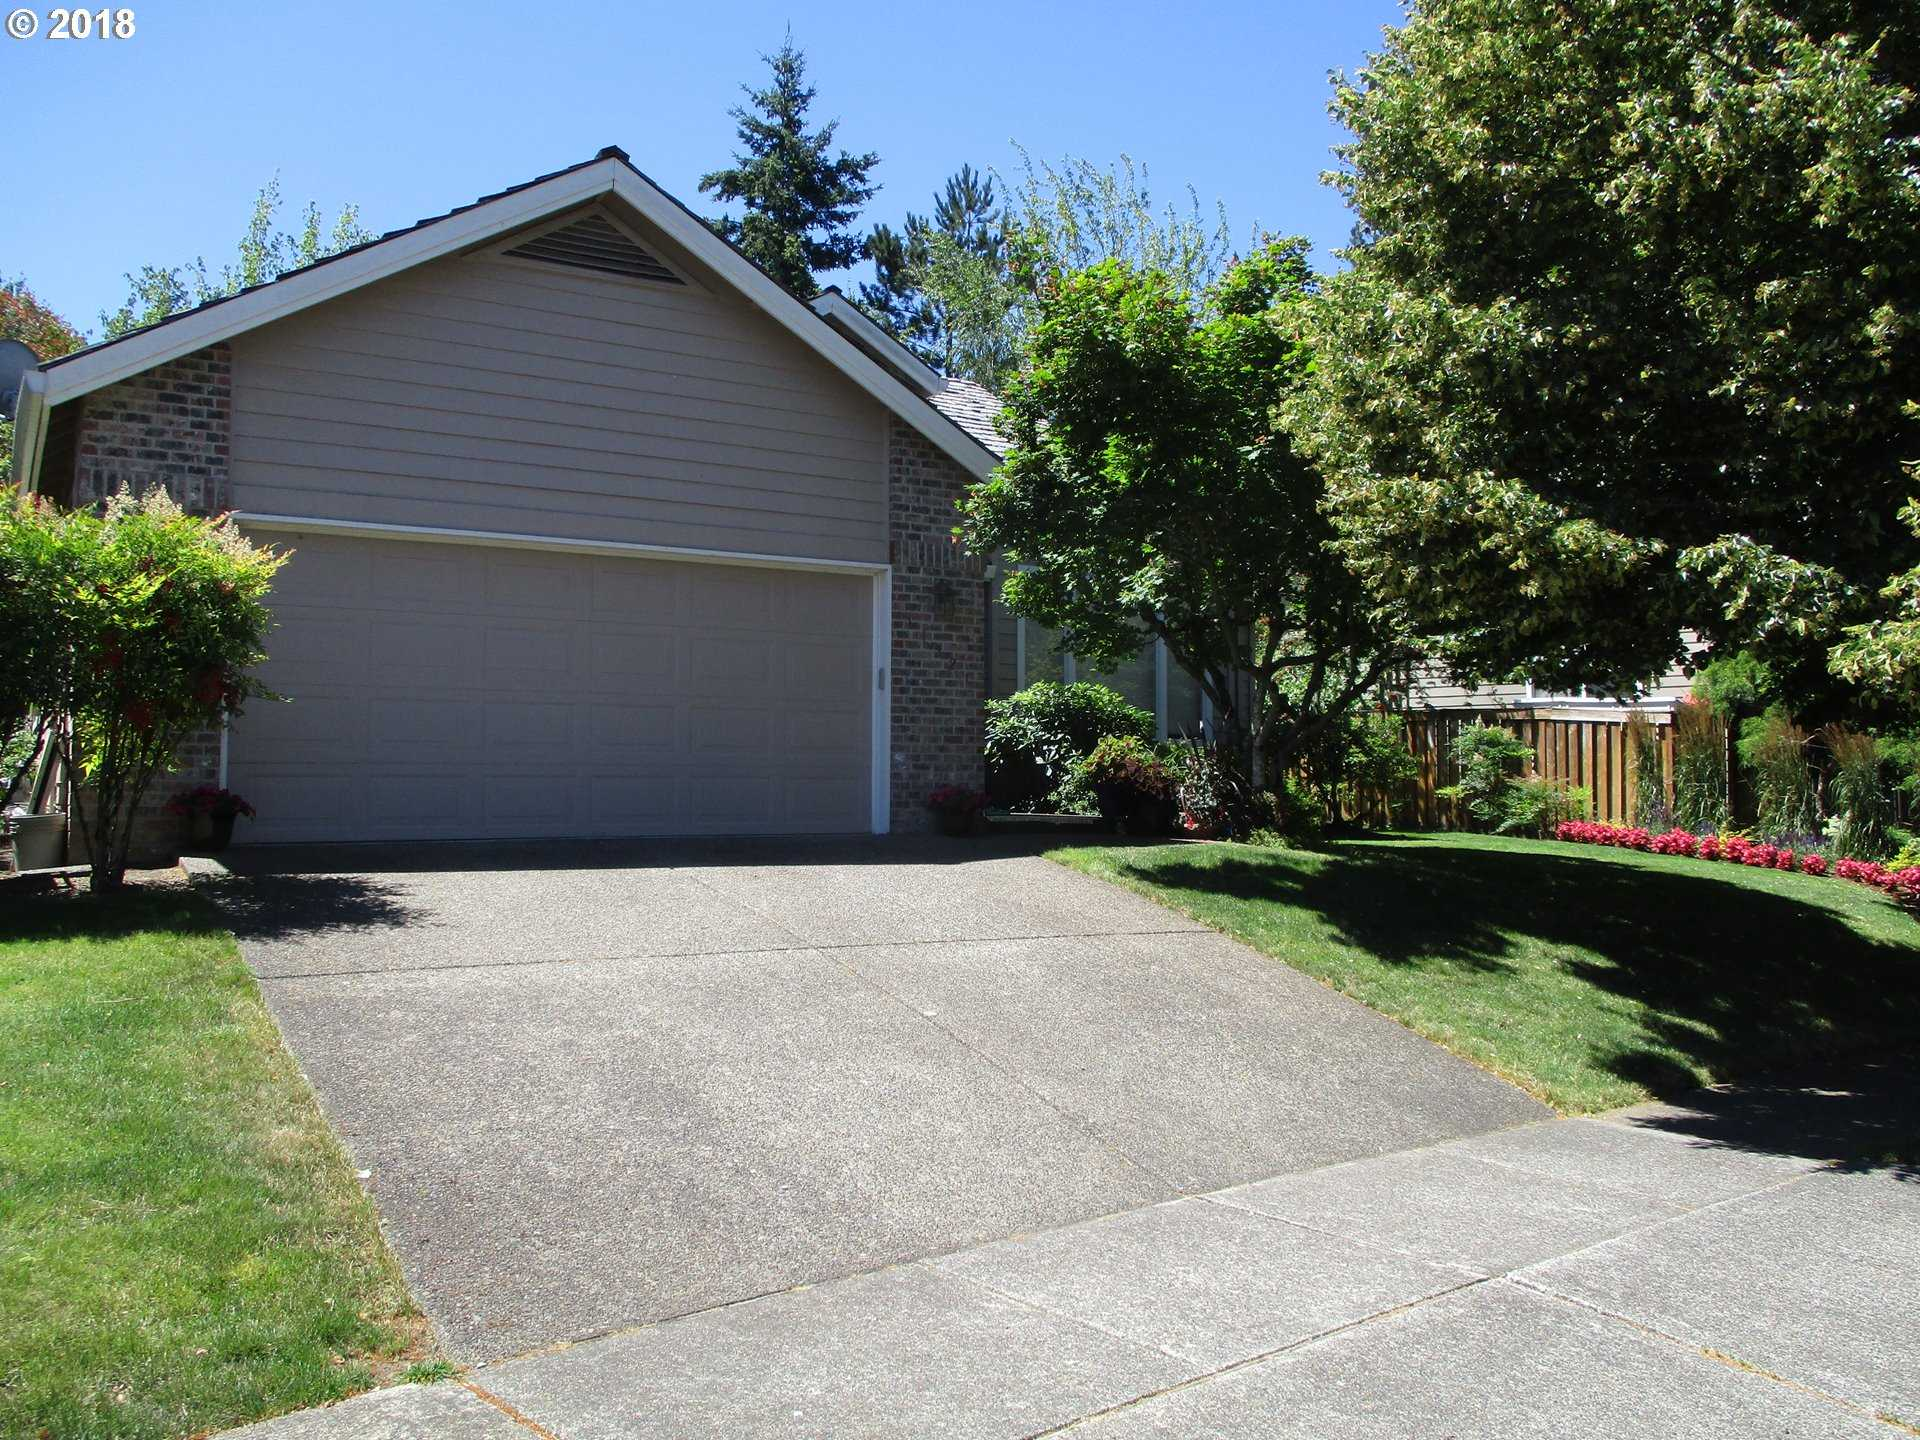 $439,000 - 3Br/2Ba -  for Sale in Murrayhill, Beaverton